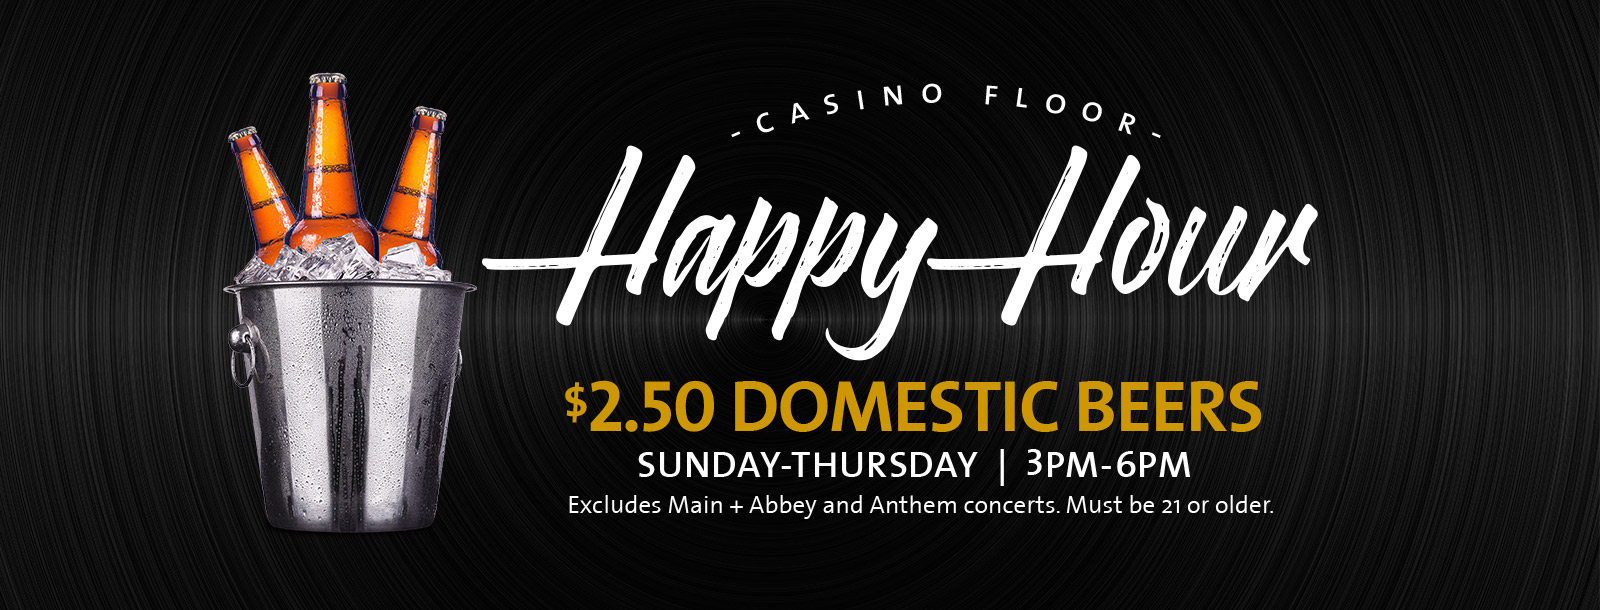 casino happy hour